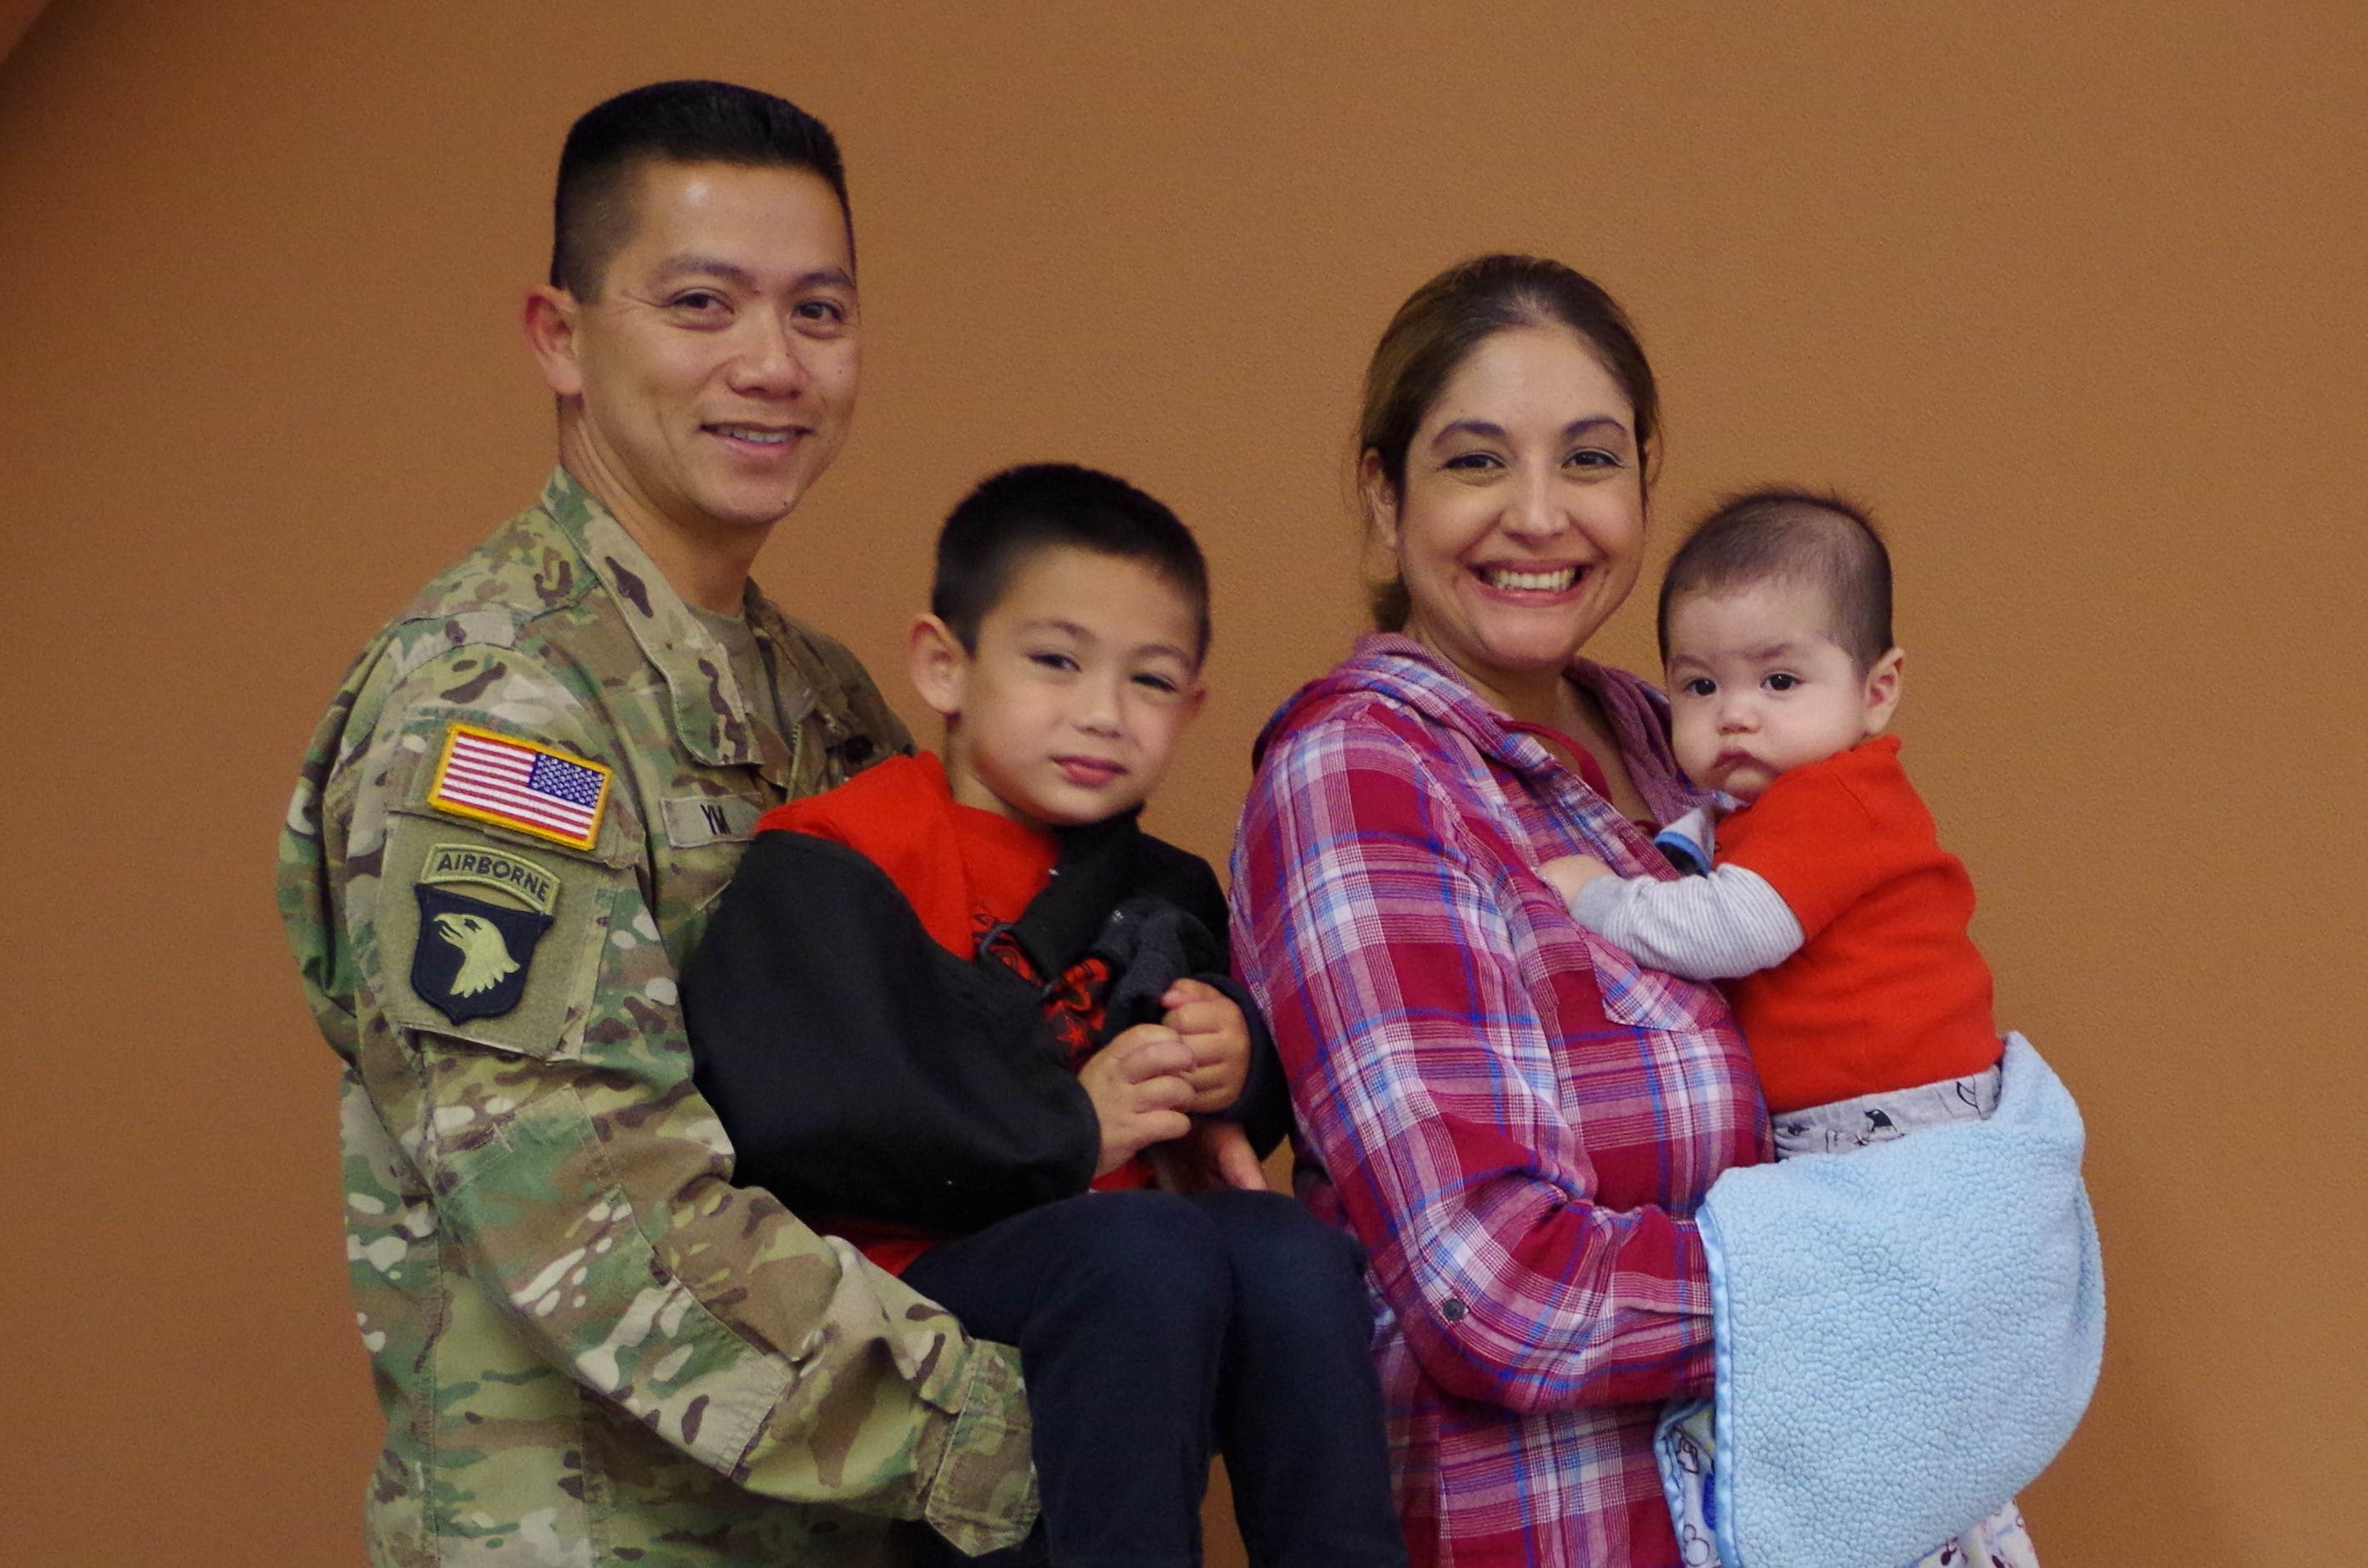 A man in US Army uniform holding a boy and a woman holding a baby